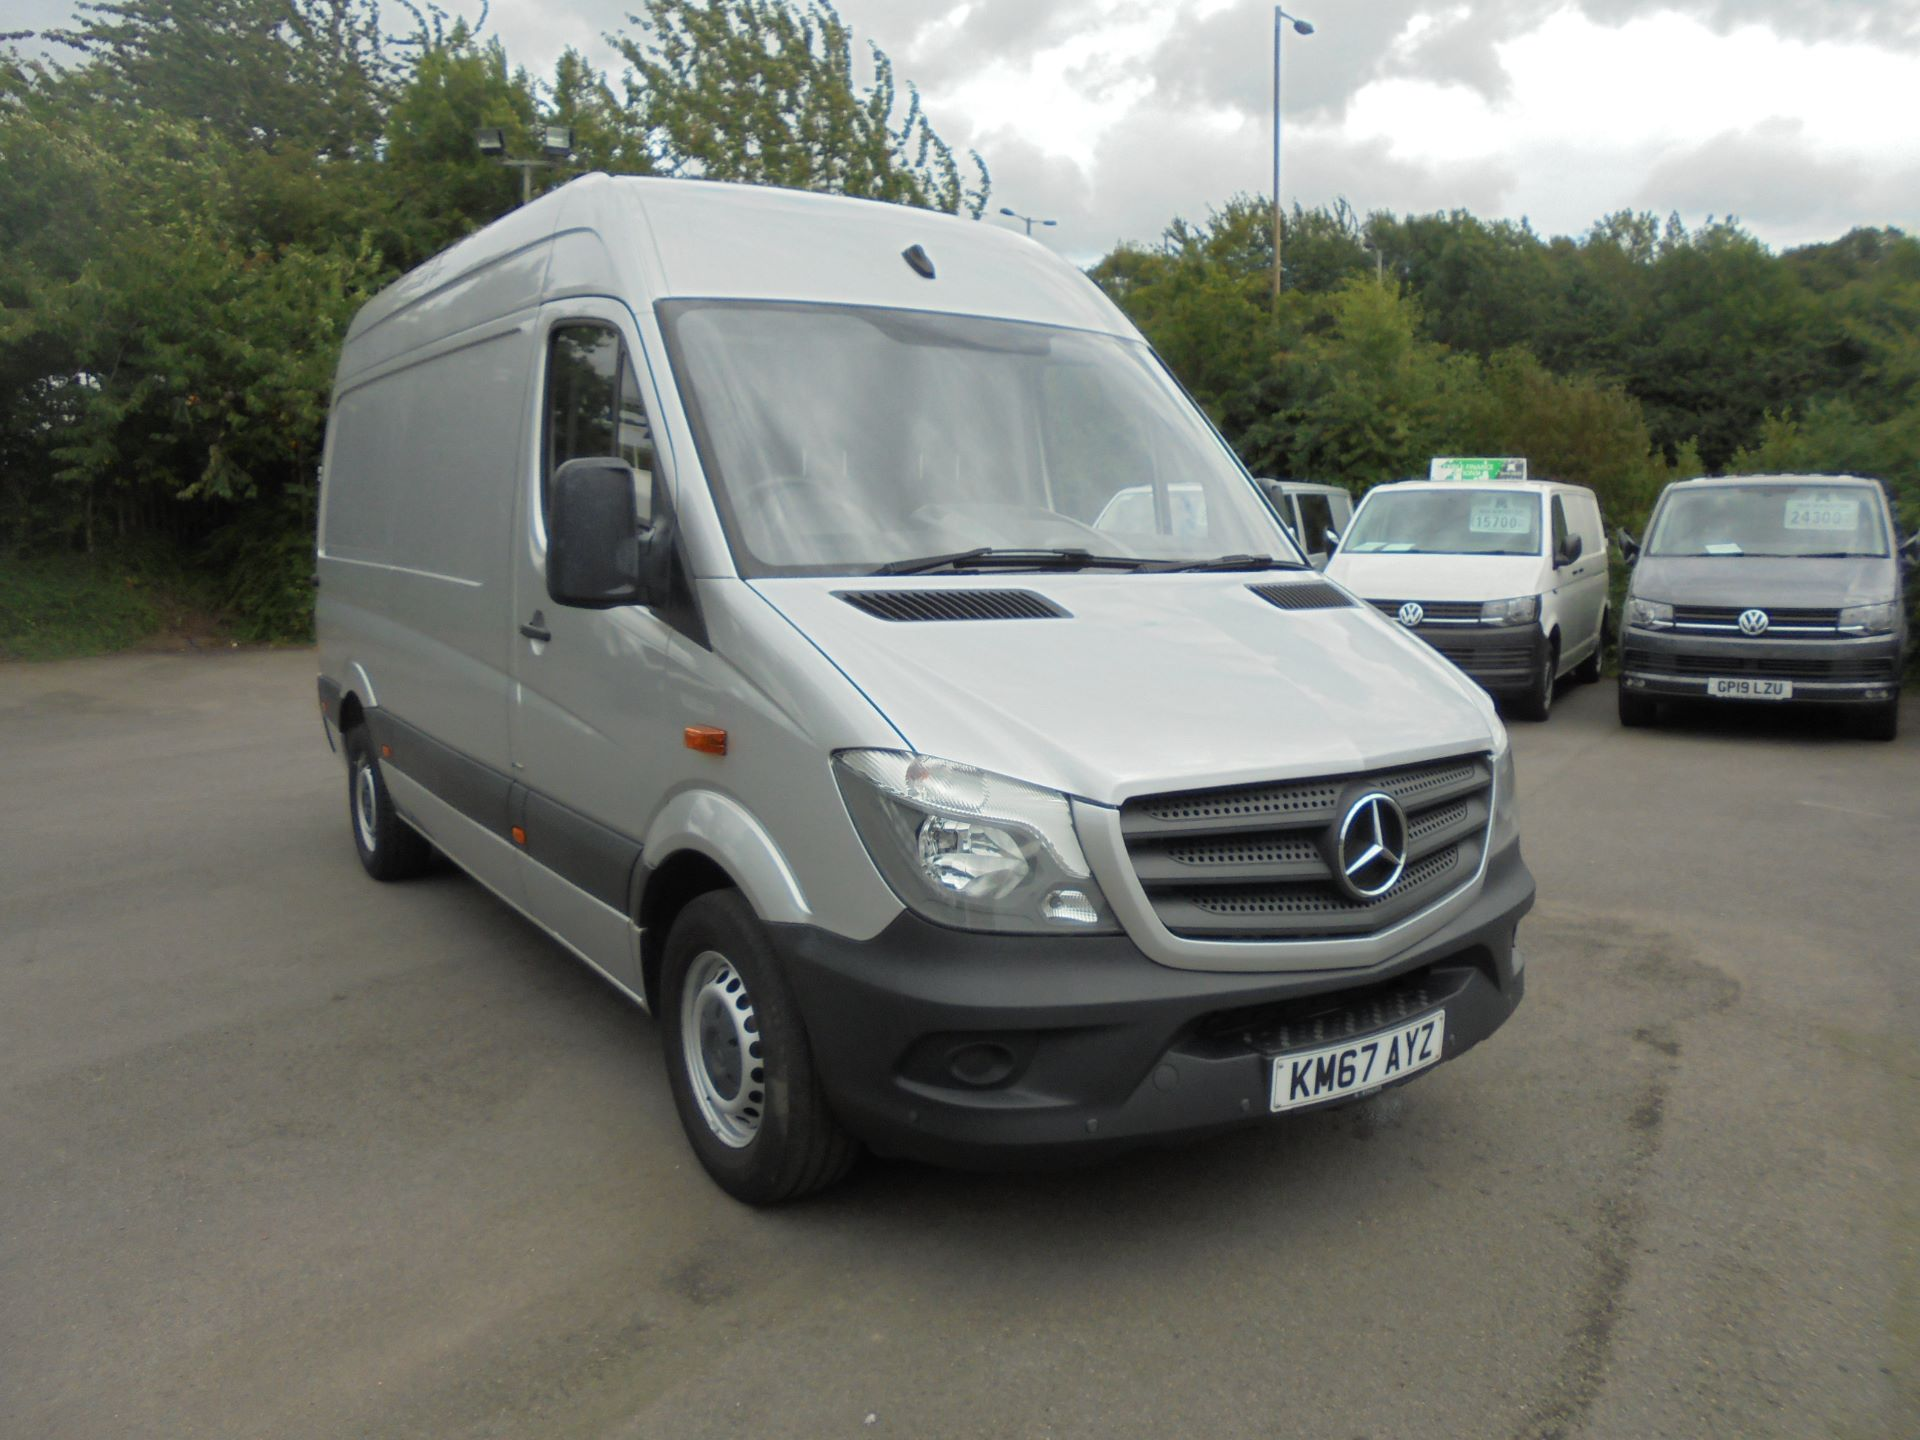 2017 Mercedes-Benz Sprinter 3.5T Blue efficiency High Roof Van Medium (KM67AYZ)